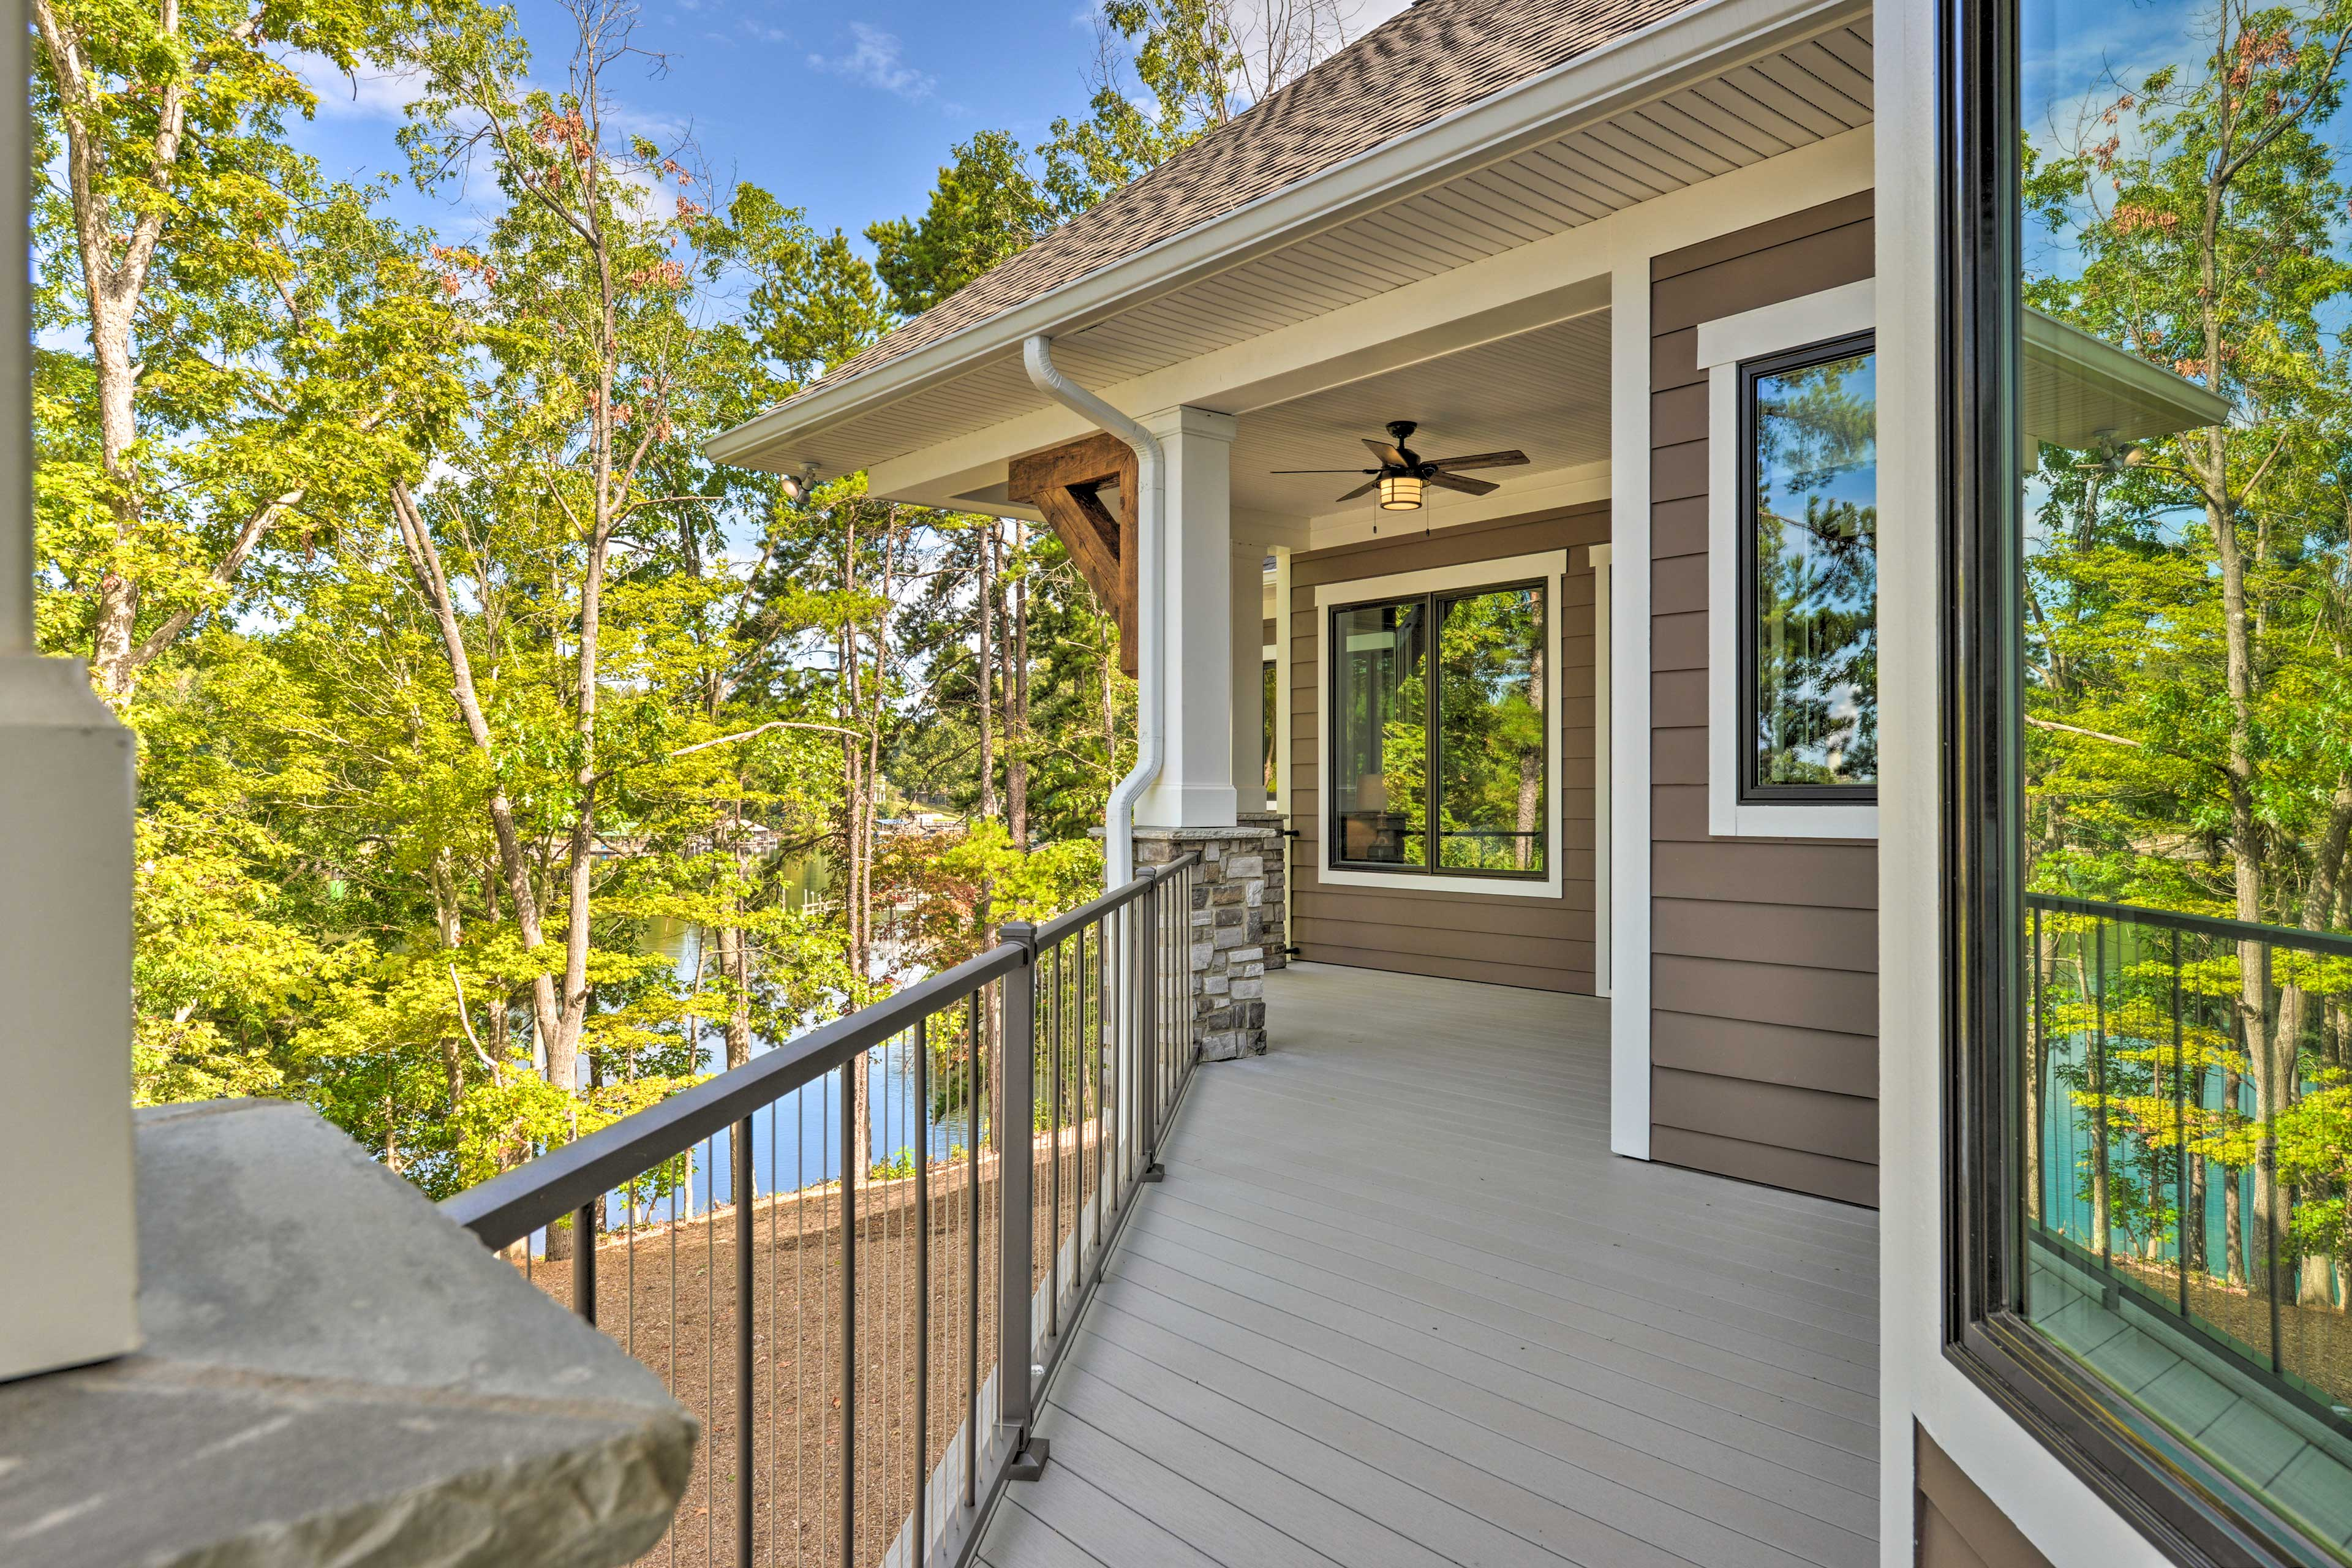 Gorgeous views can be seen from every angle of the deck.